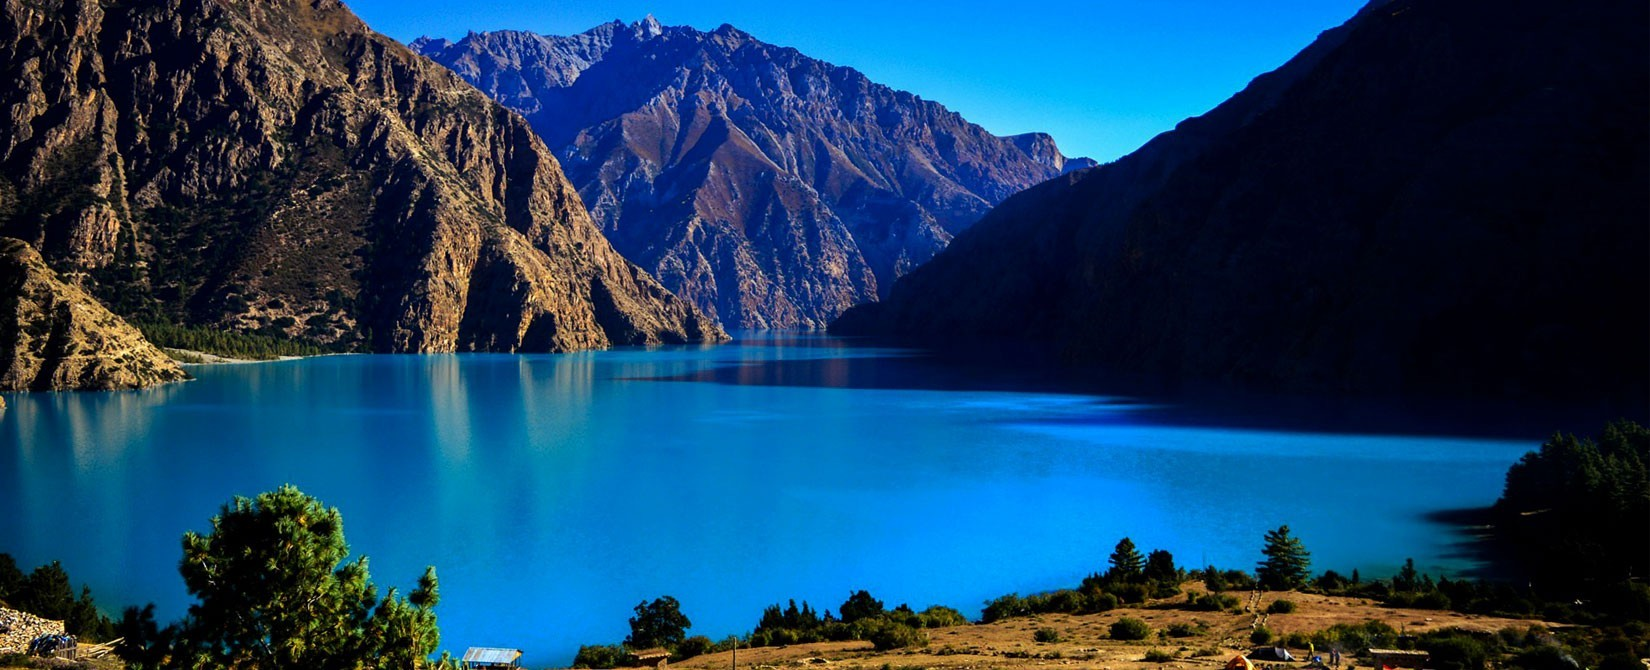 Shey Phoksundo Lake Lower Dolpo